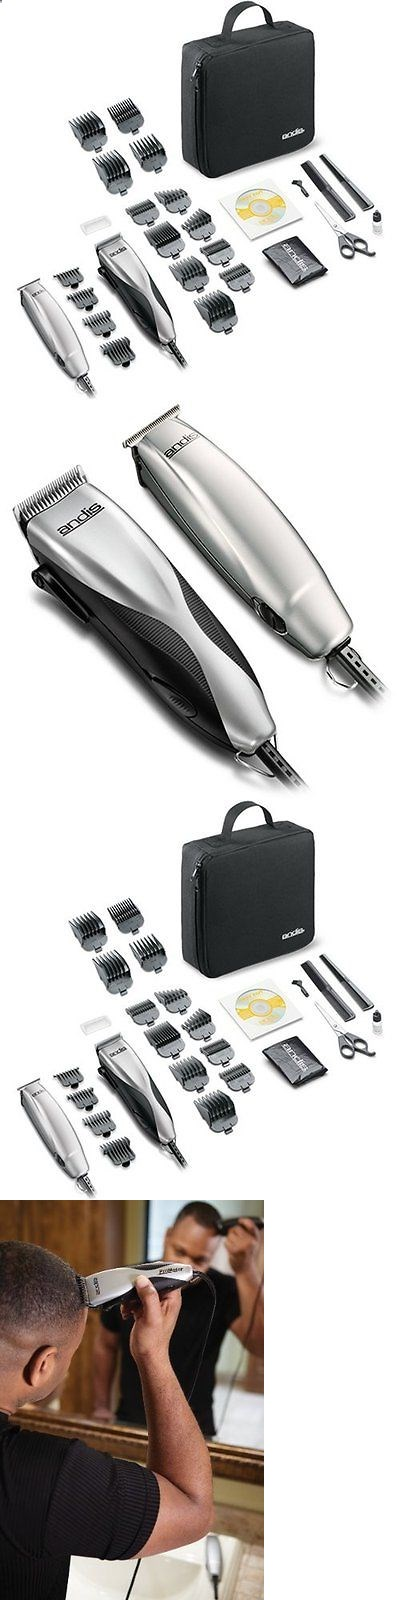 Hair Clippers And Trimmers Andis 29115 Promotor Clipper Trimmer Combo 27